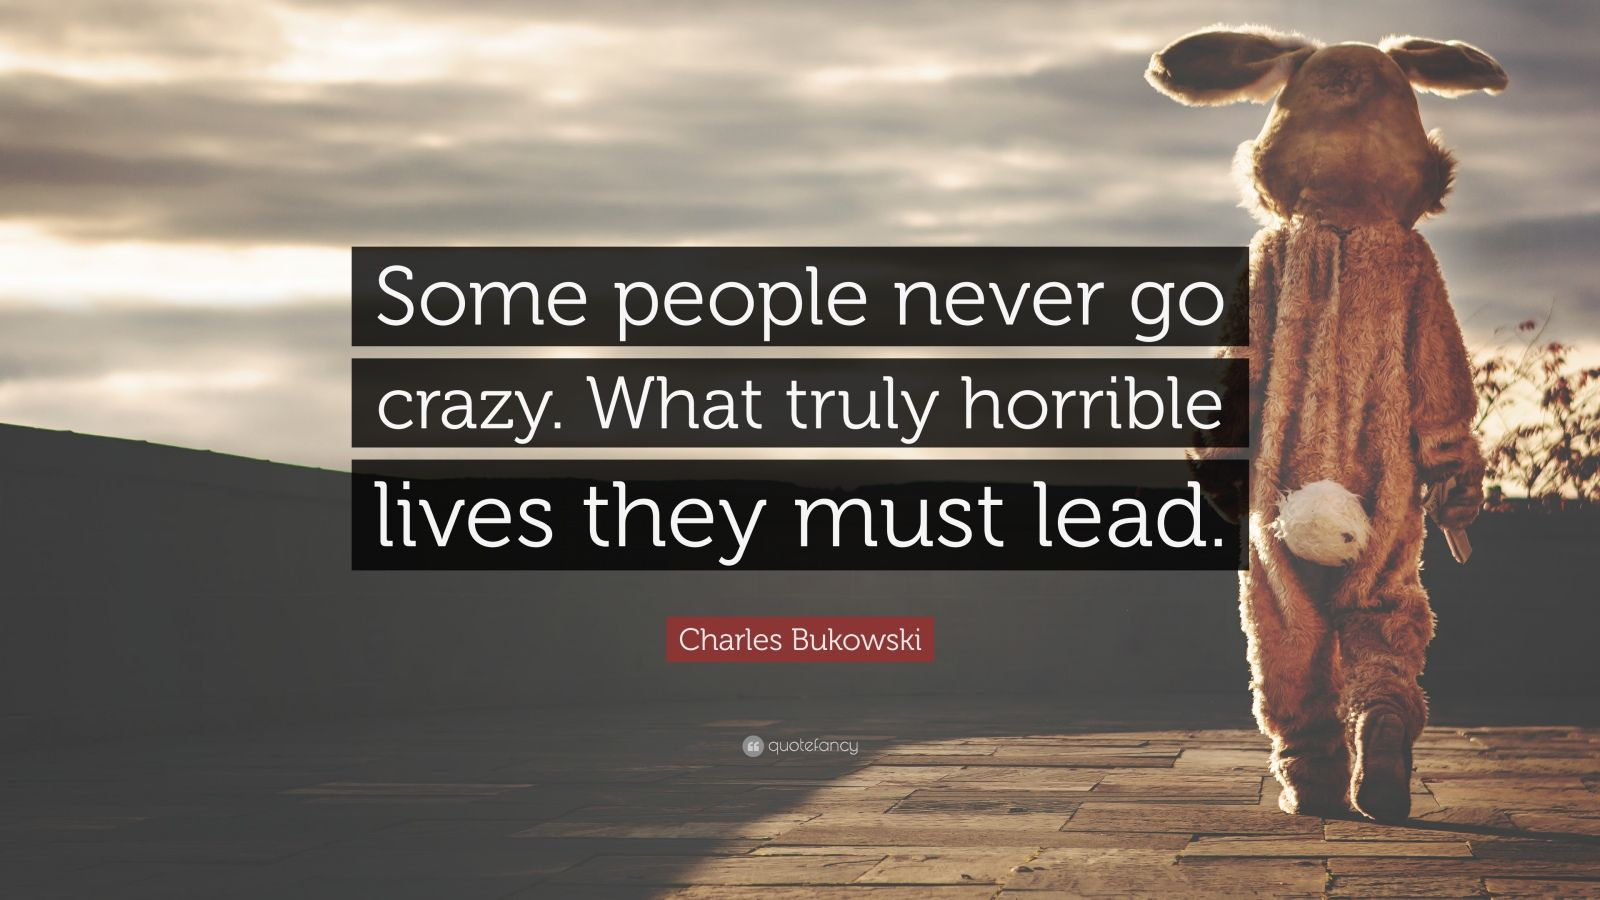 """Charles Bukowski Quote: """"Some people never go crazy. What truly horrible lives they must lead."""""""